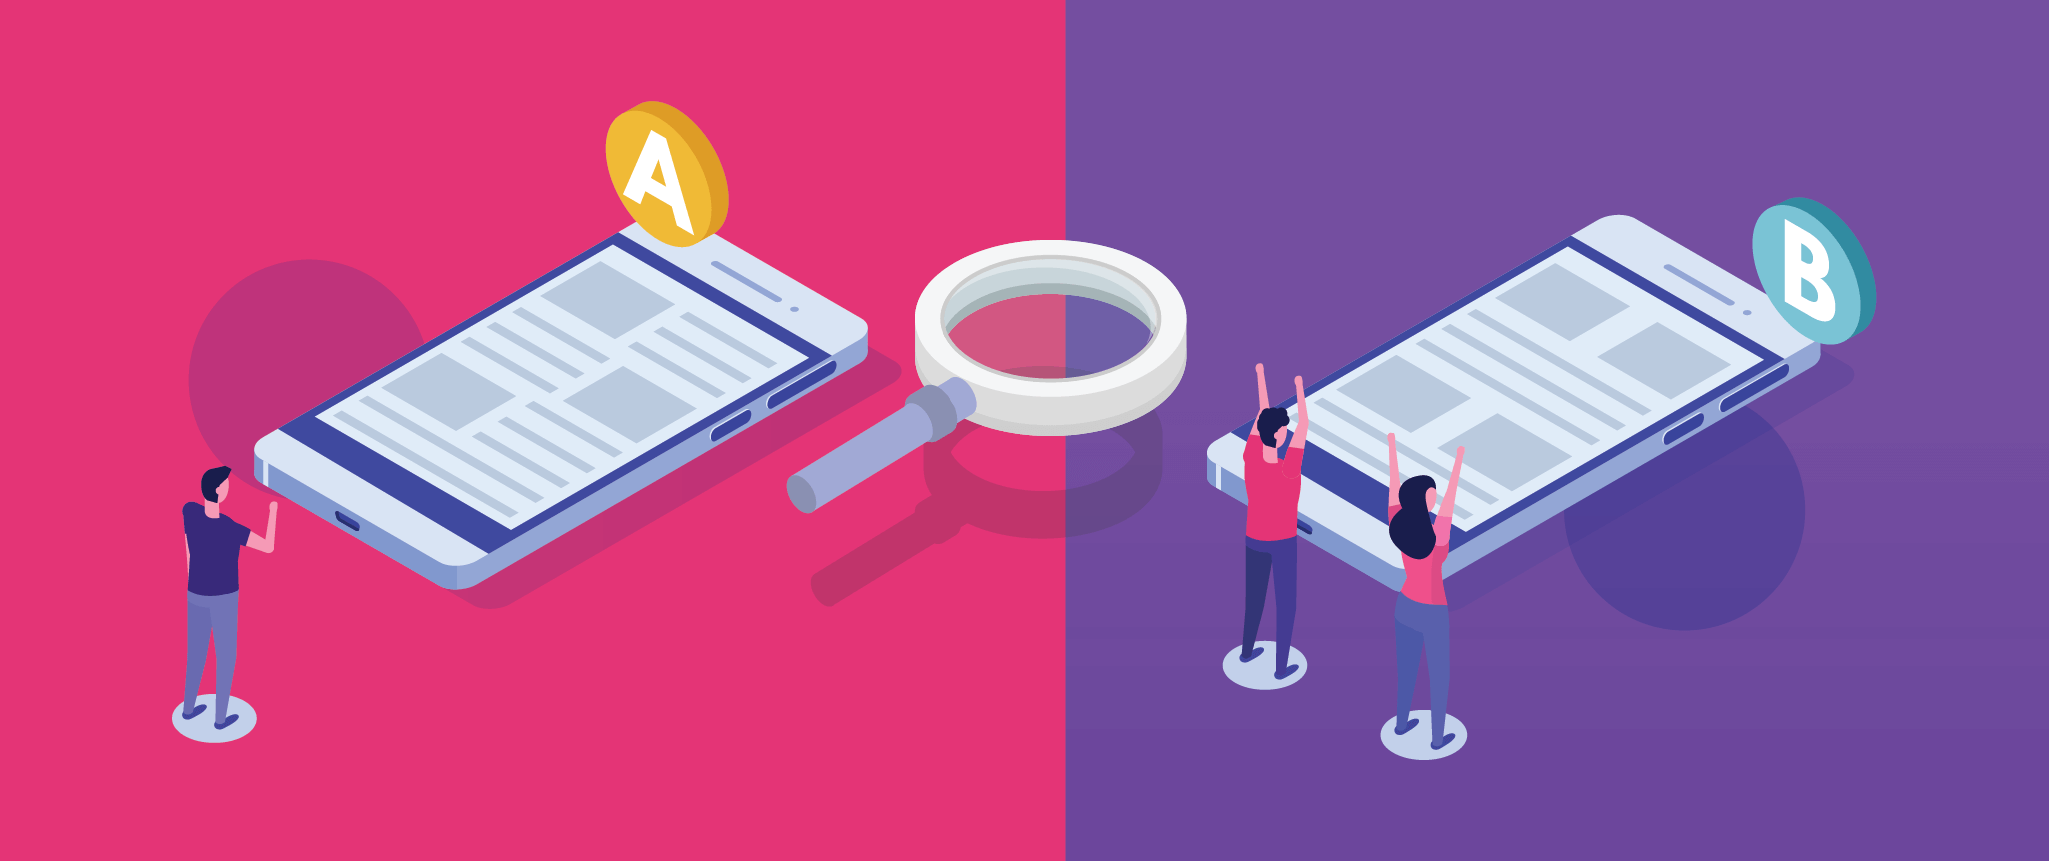 Screen A/B Testing for Mobile Applications: Using Data to Design Better User Experiences